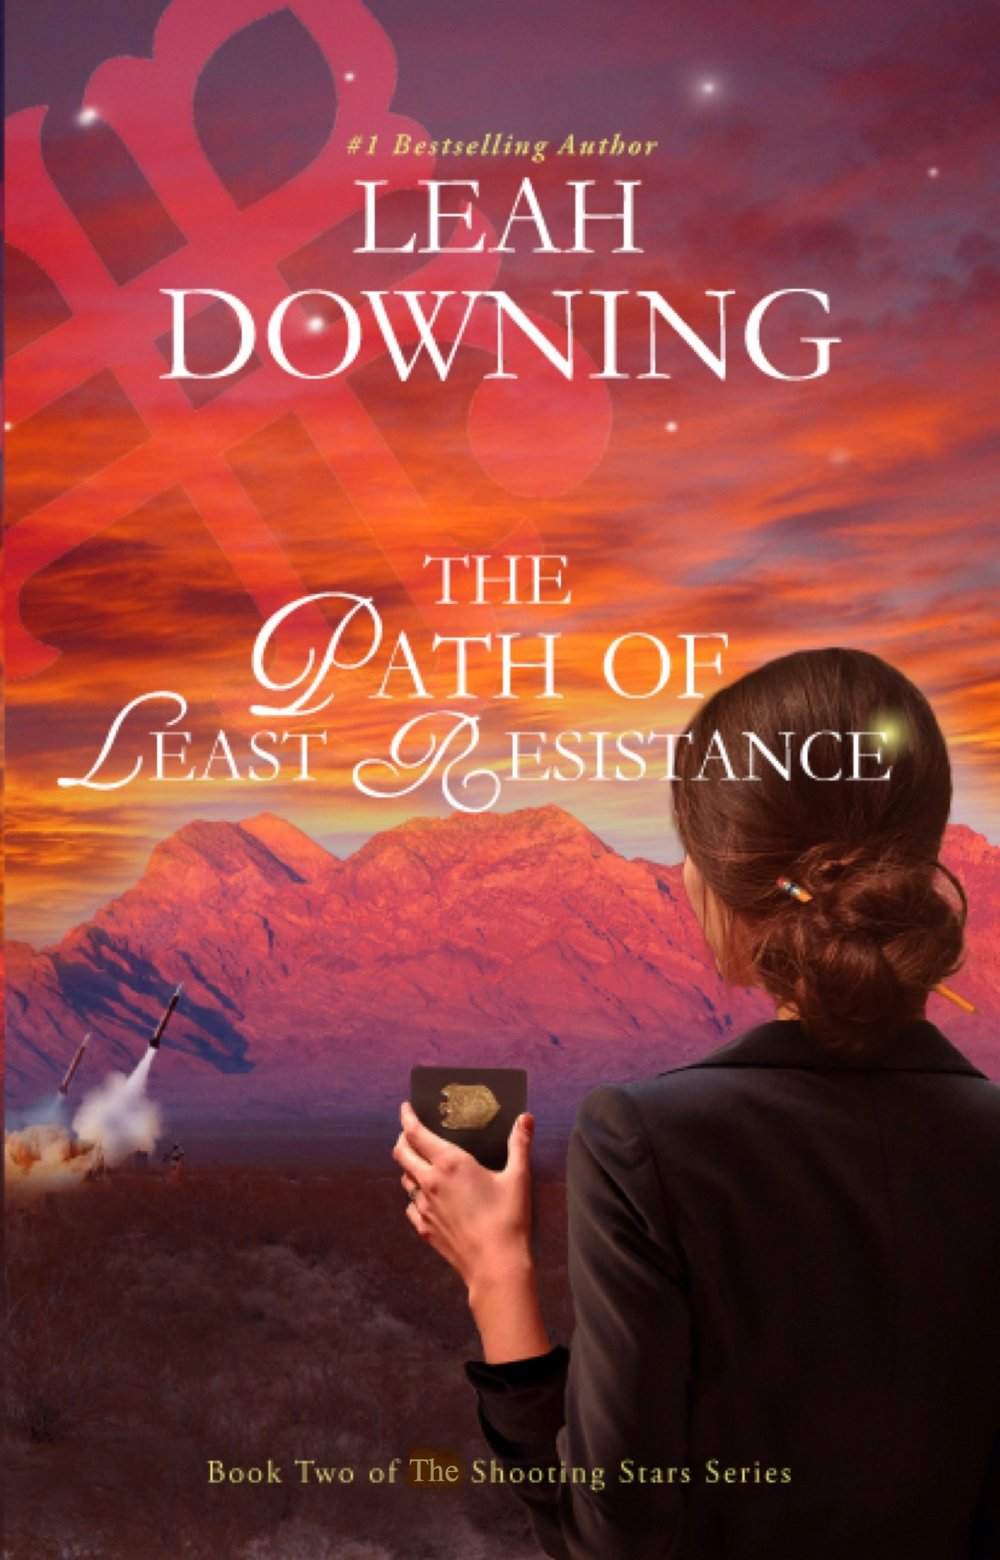 Path of Least Resistance, The - Leah Downing.jpg